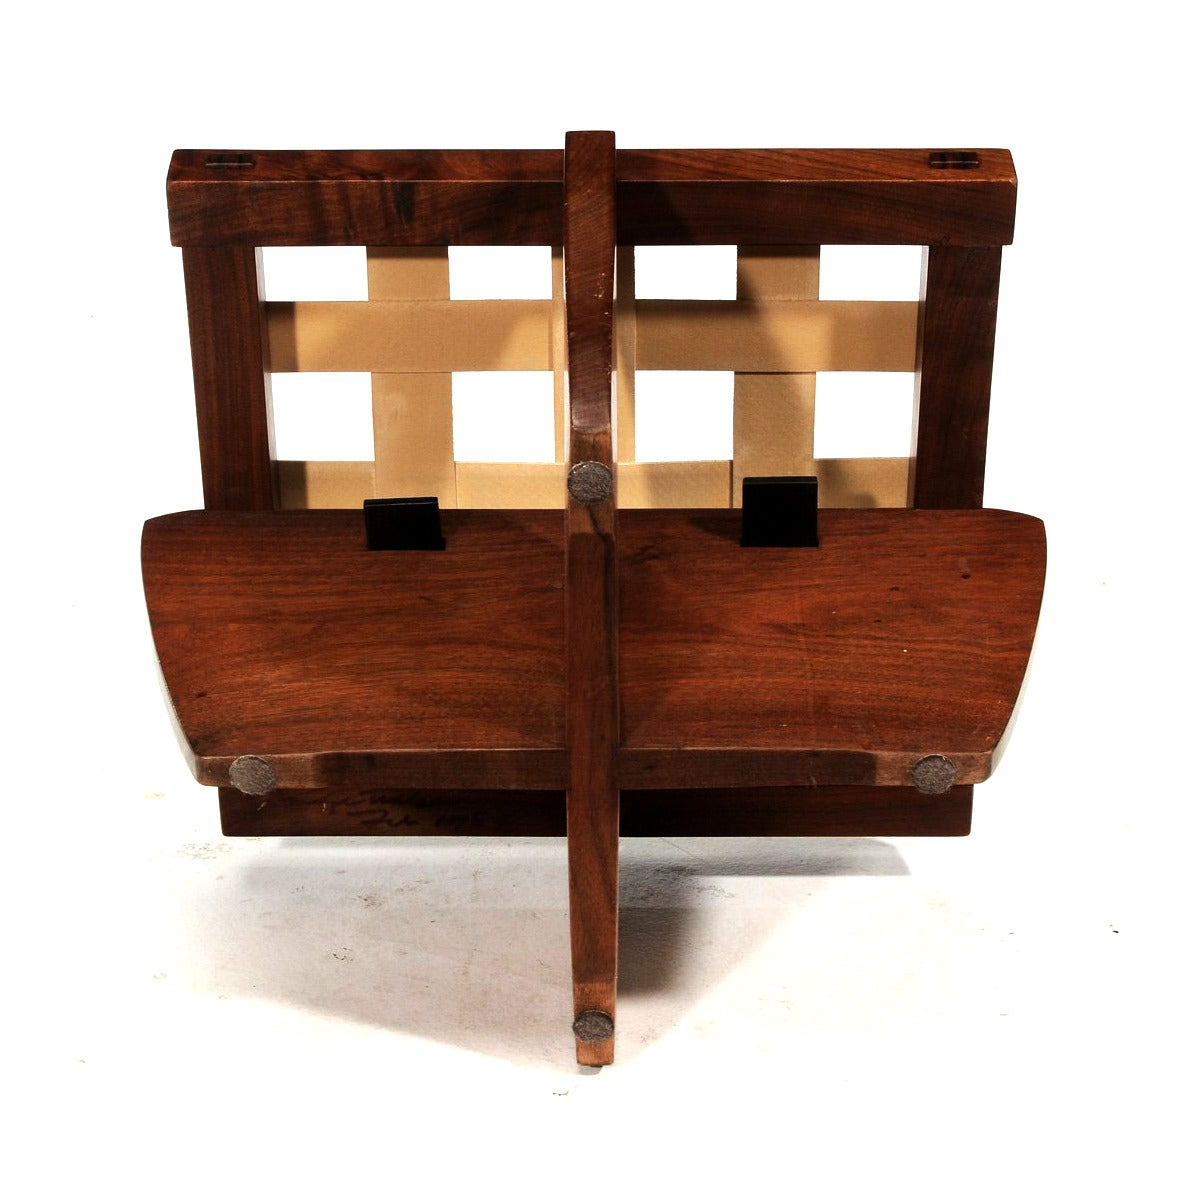 20th Century Walnut Greenrock Stool or Bench with cushion by George Nakashima For Sale